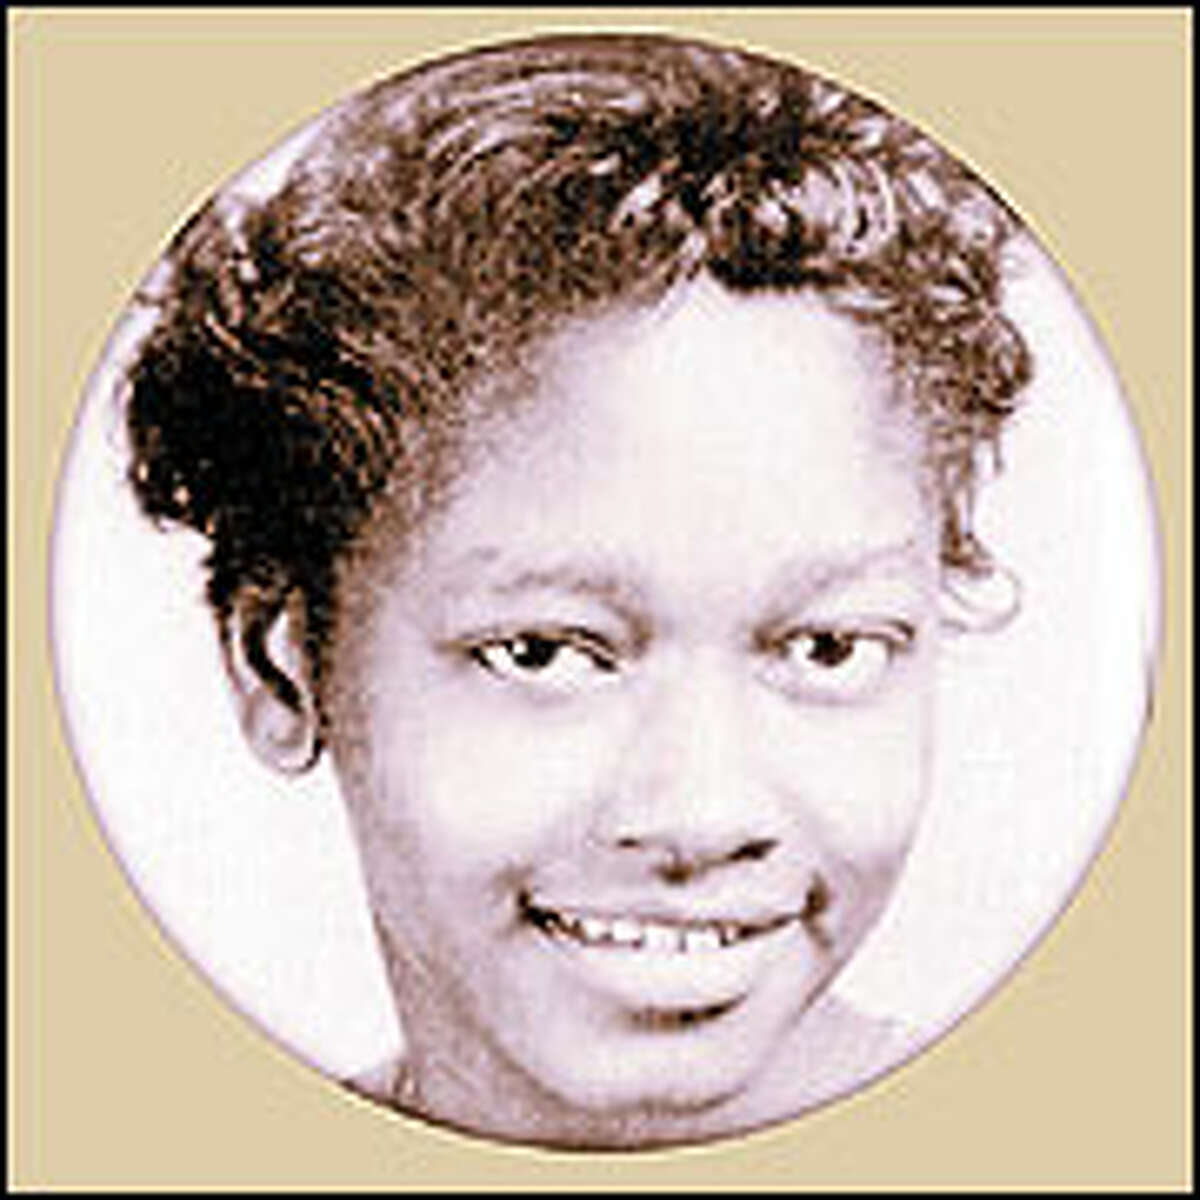 Not alone At the time in 1955 she refused to move her bus seat for a white rider, she was not the first to do so. Bayard Rustin had done so back in 1942, and 15-year-old Claudette Colvin had done it earlier in 1955 in Montgomery.